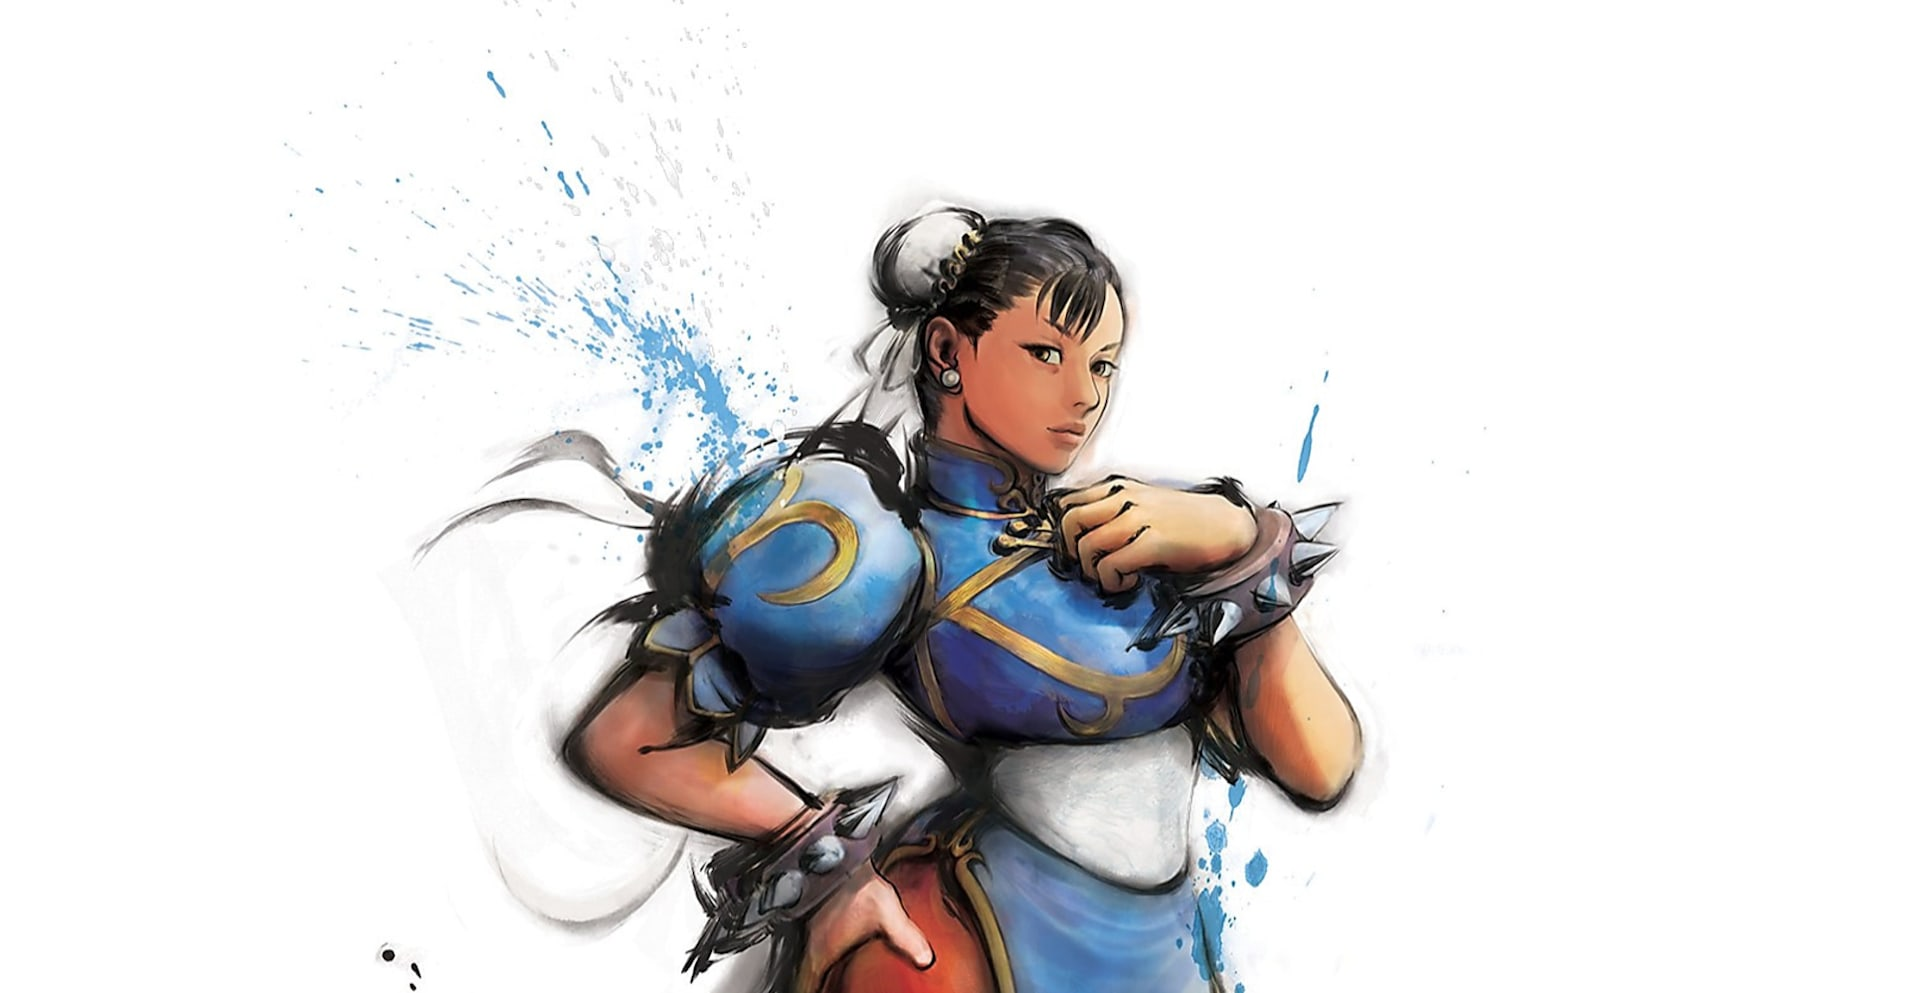 Profile: Street Fighter's Chun-Li